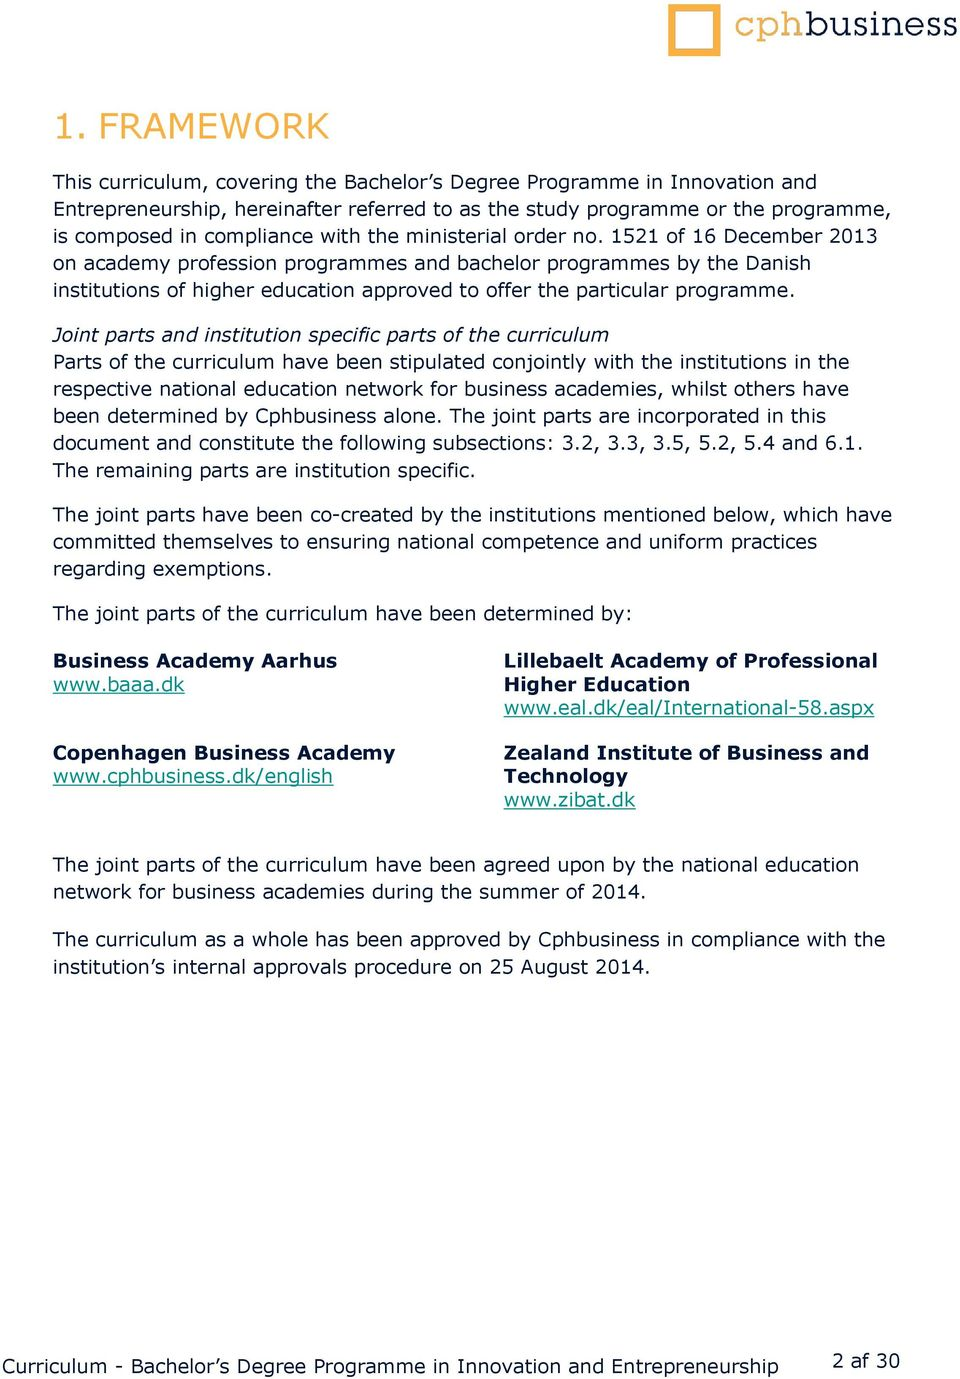 1521 of 16 December 2013 on academy profession programmes and bachelor programmes by the Danish institutions of higher education approved to offer the particular programme.